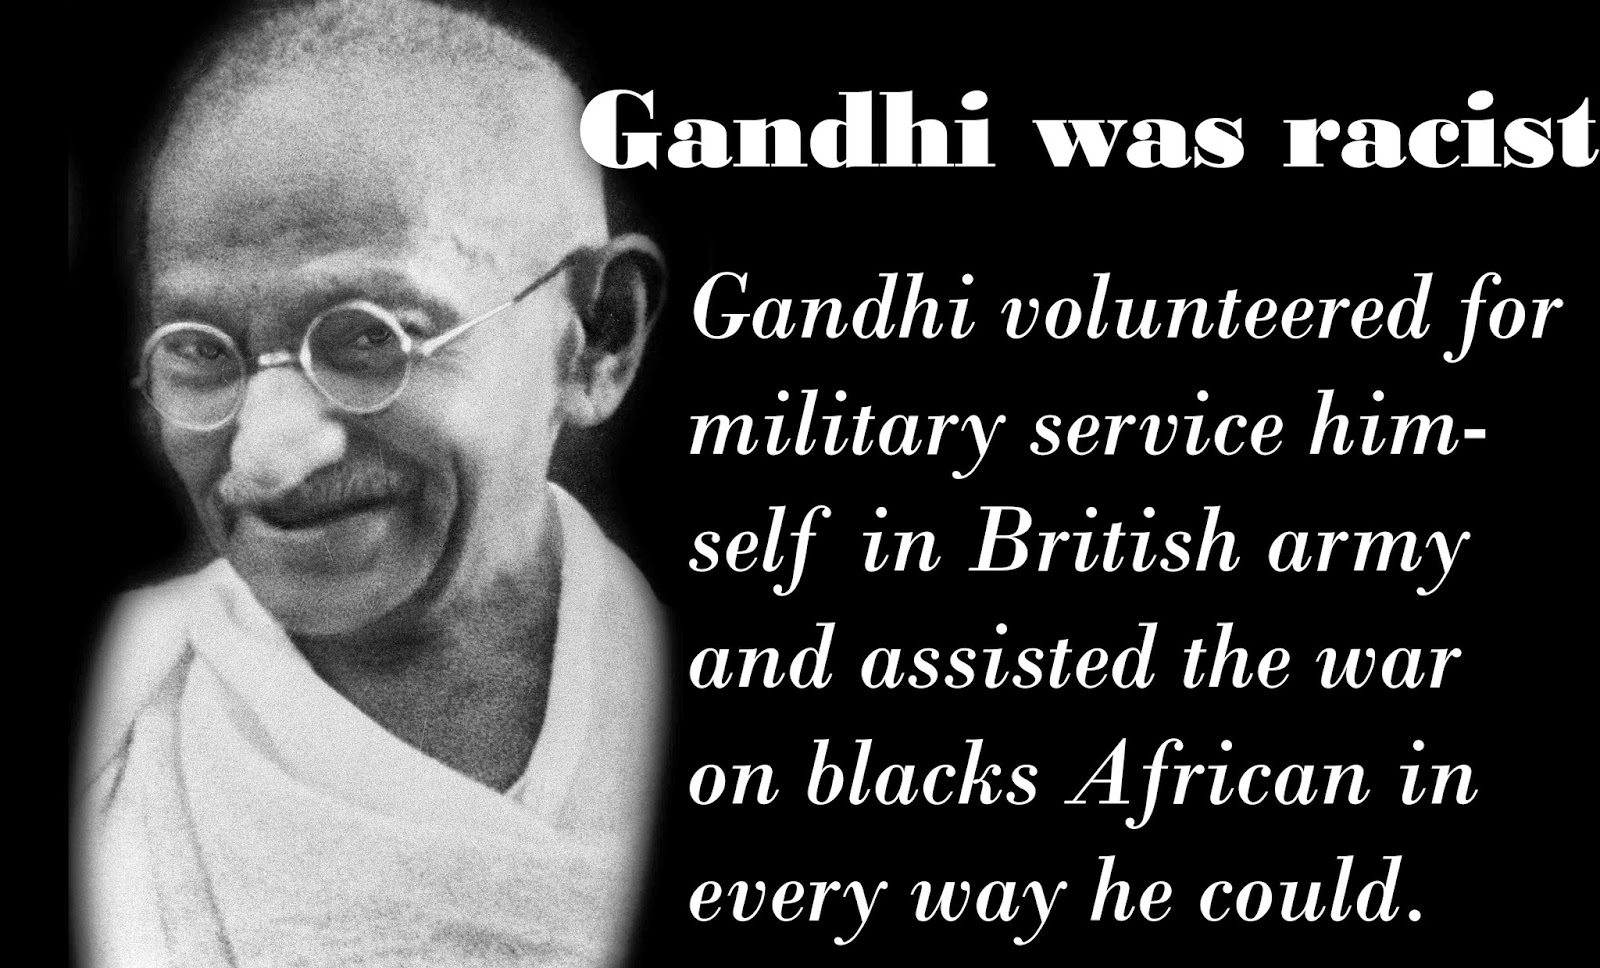 gandhi helped british army to defeat black african